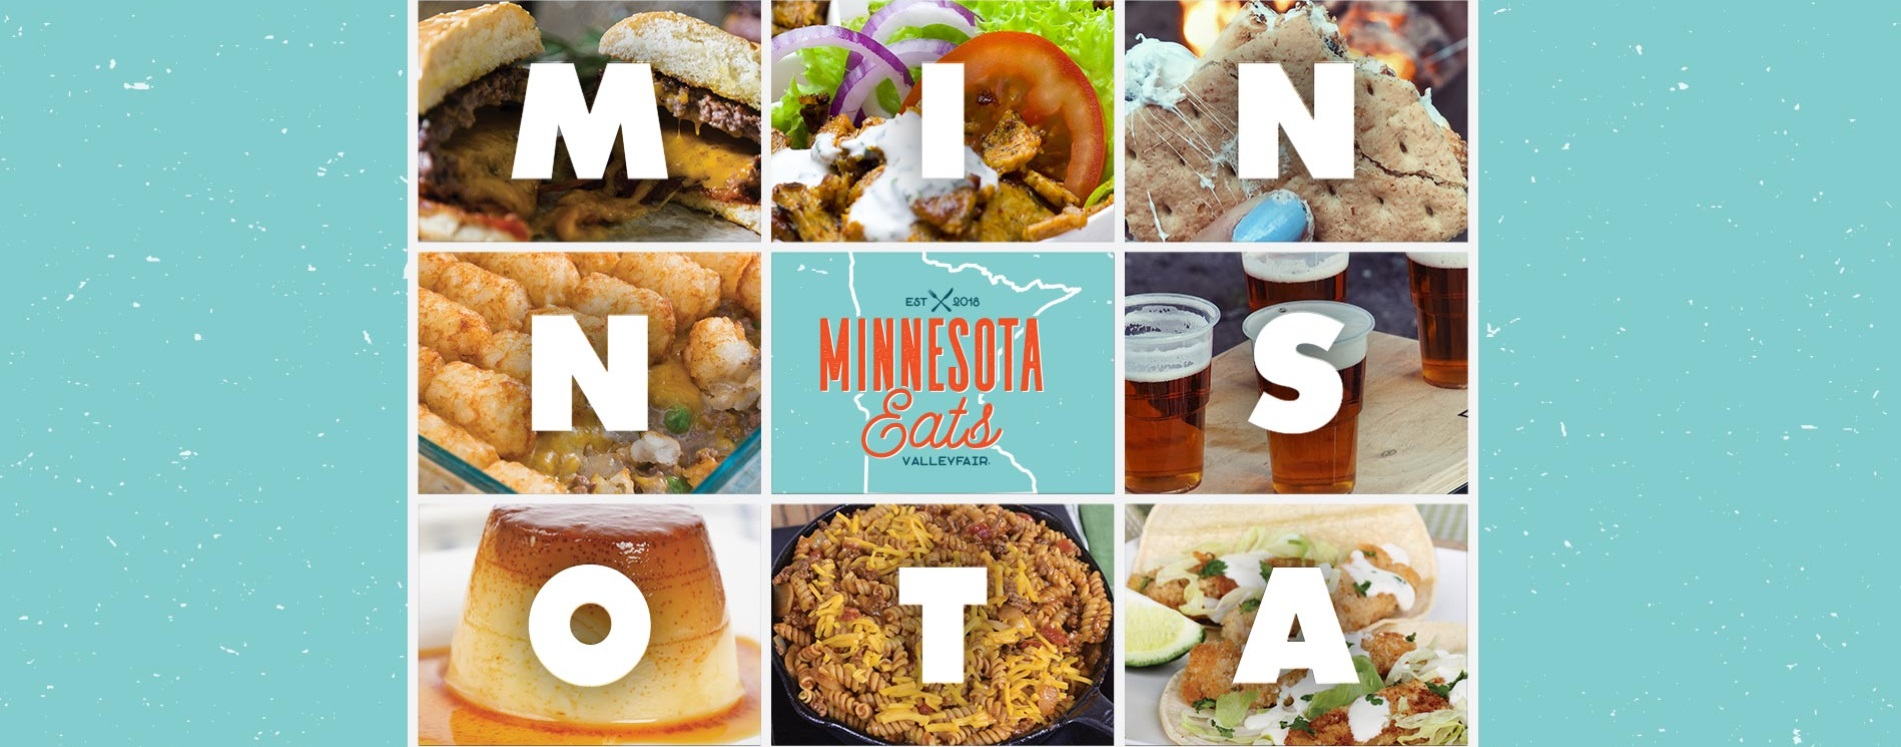 Minnesota Eats